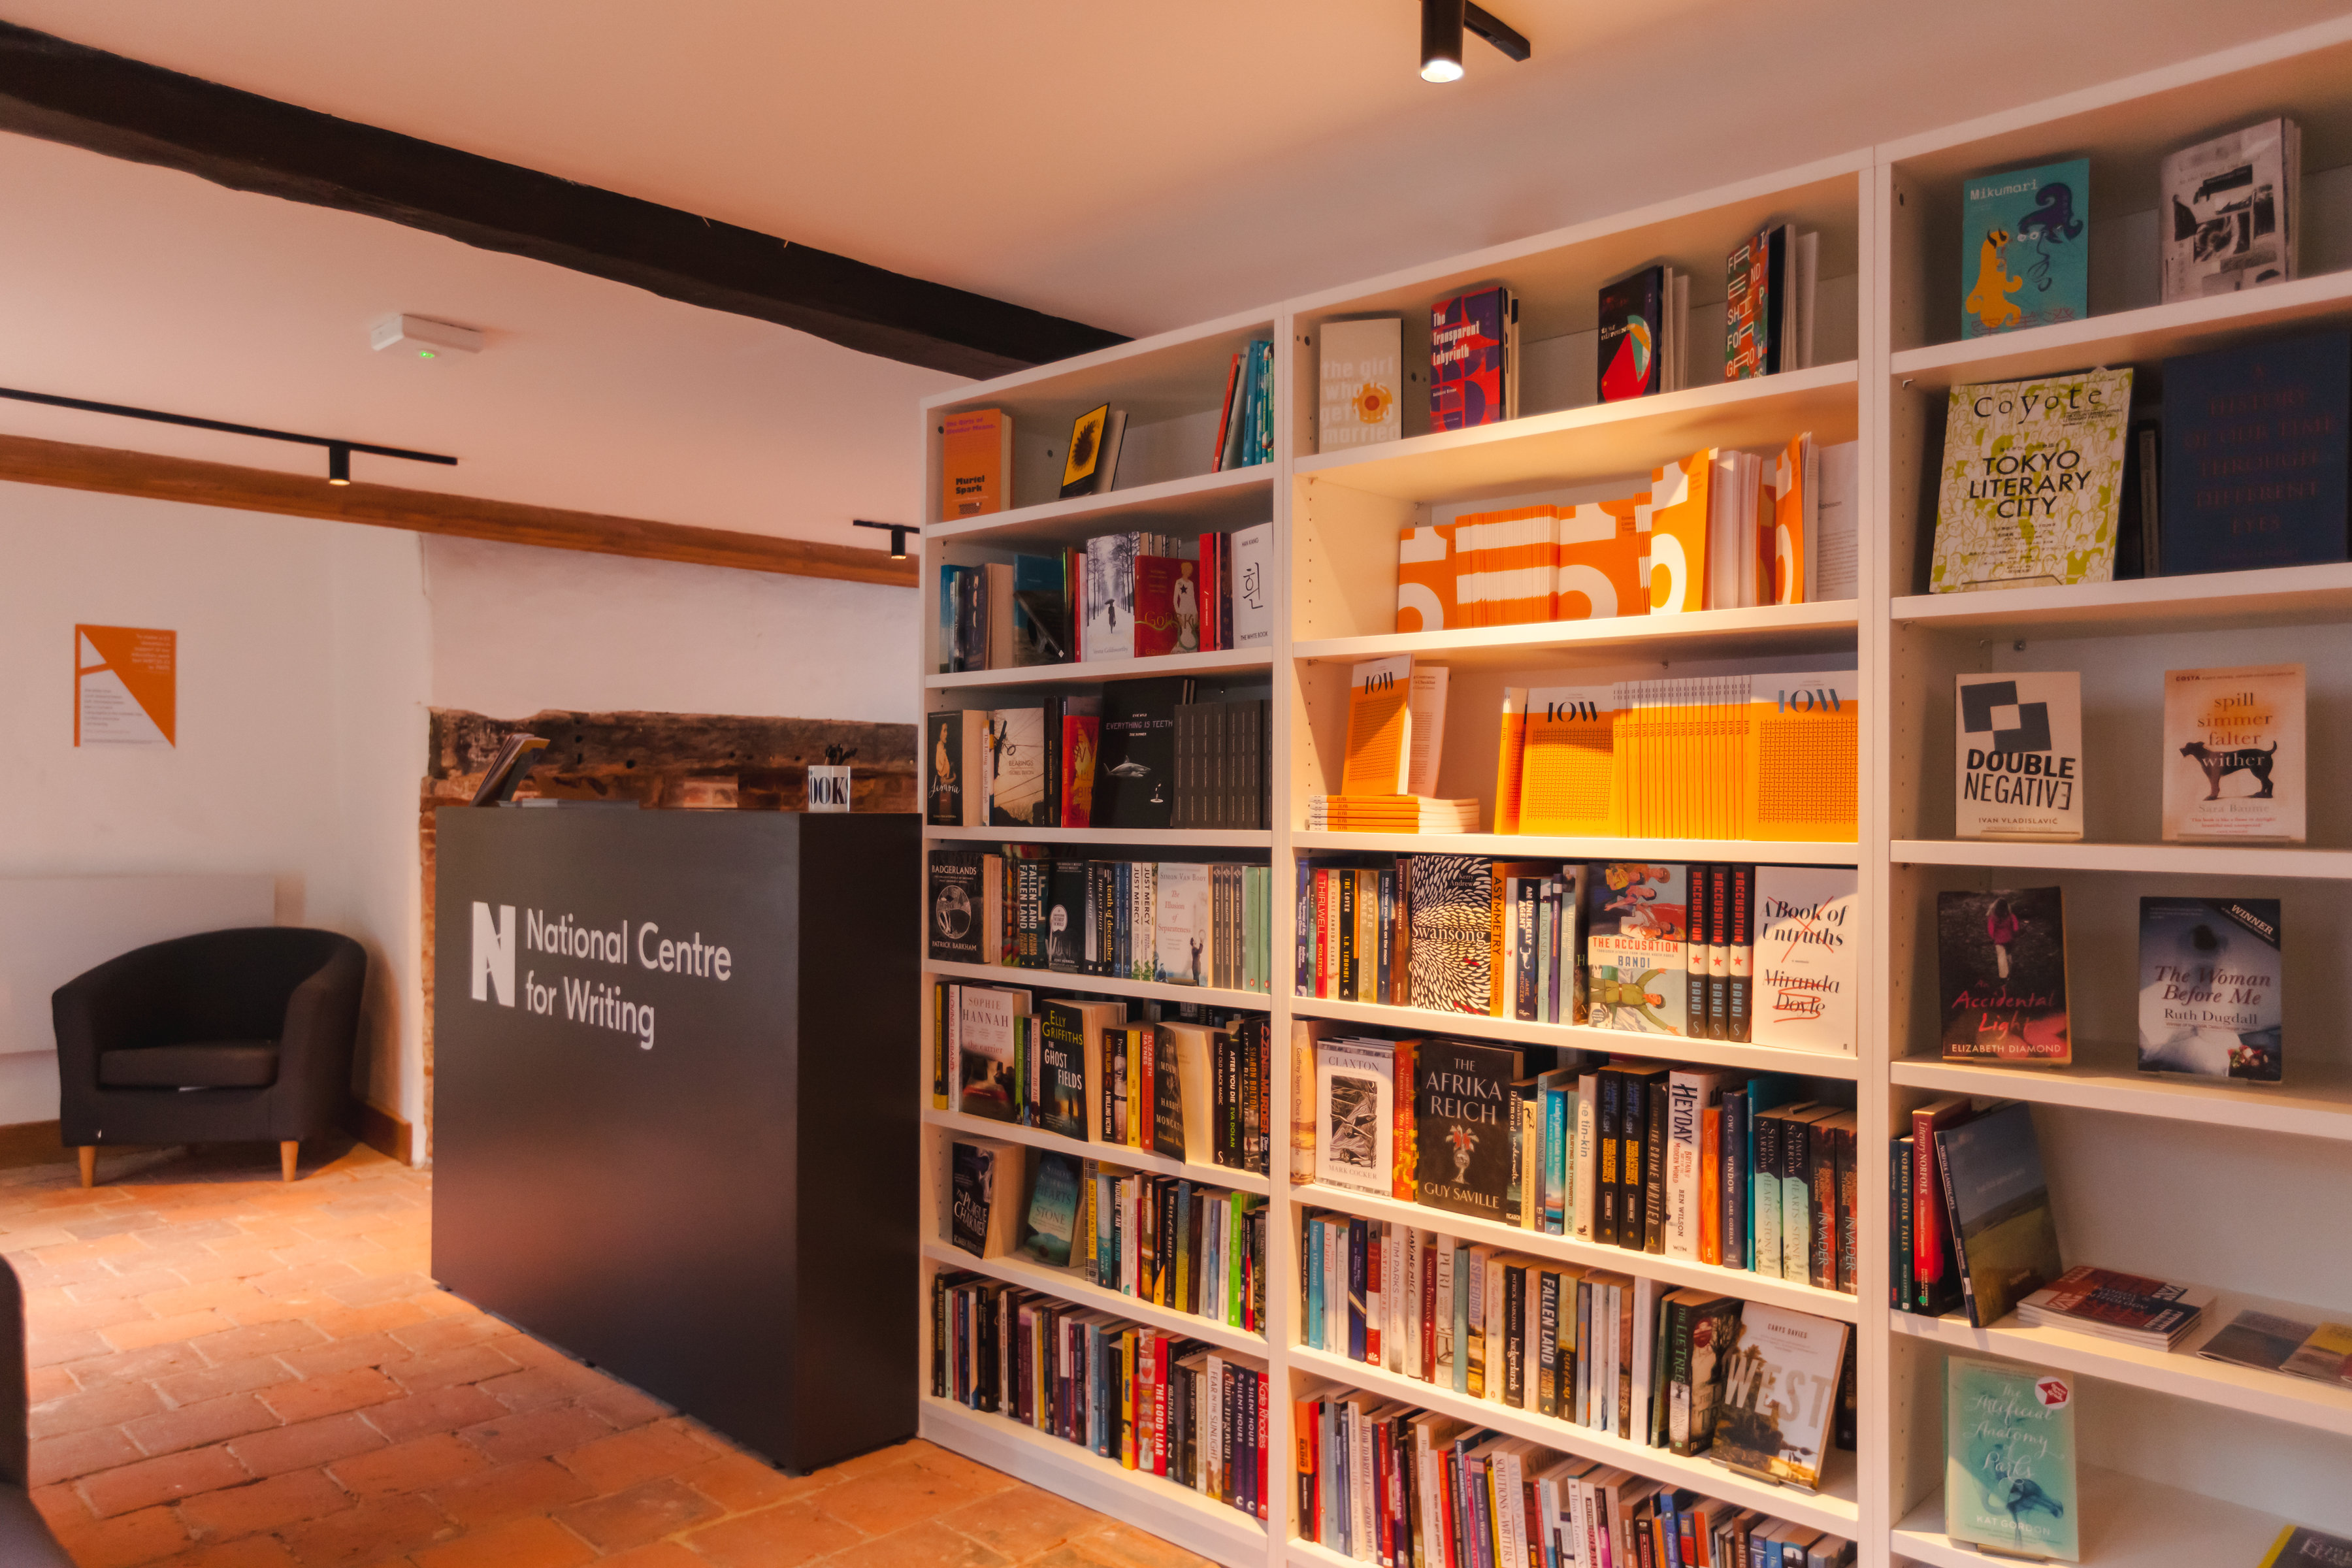 The National Centre for Writing, Norwich